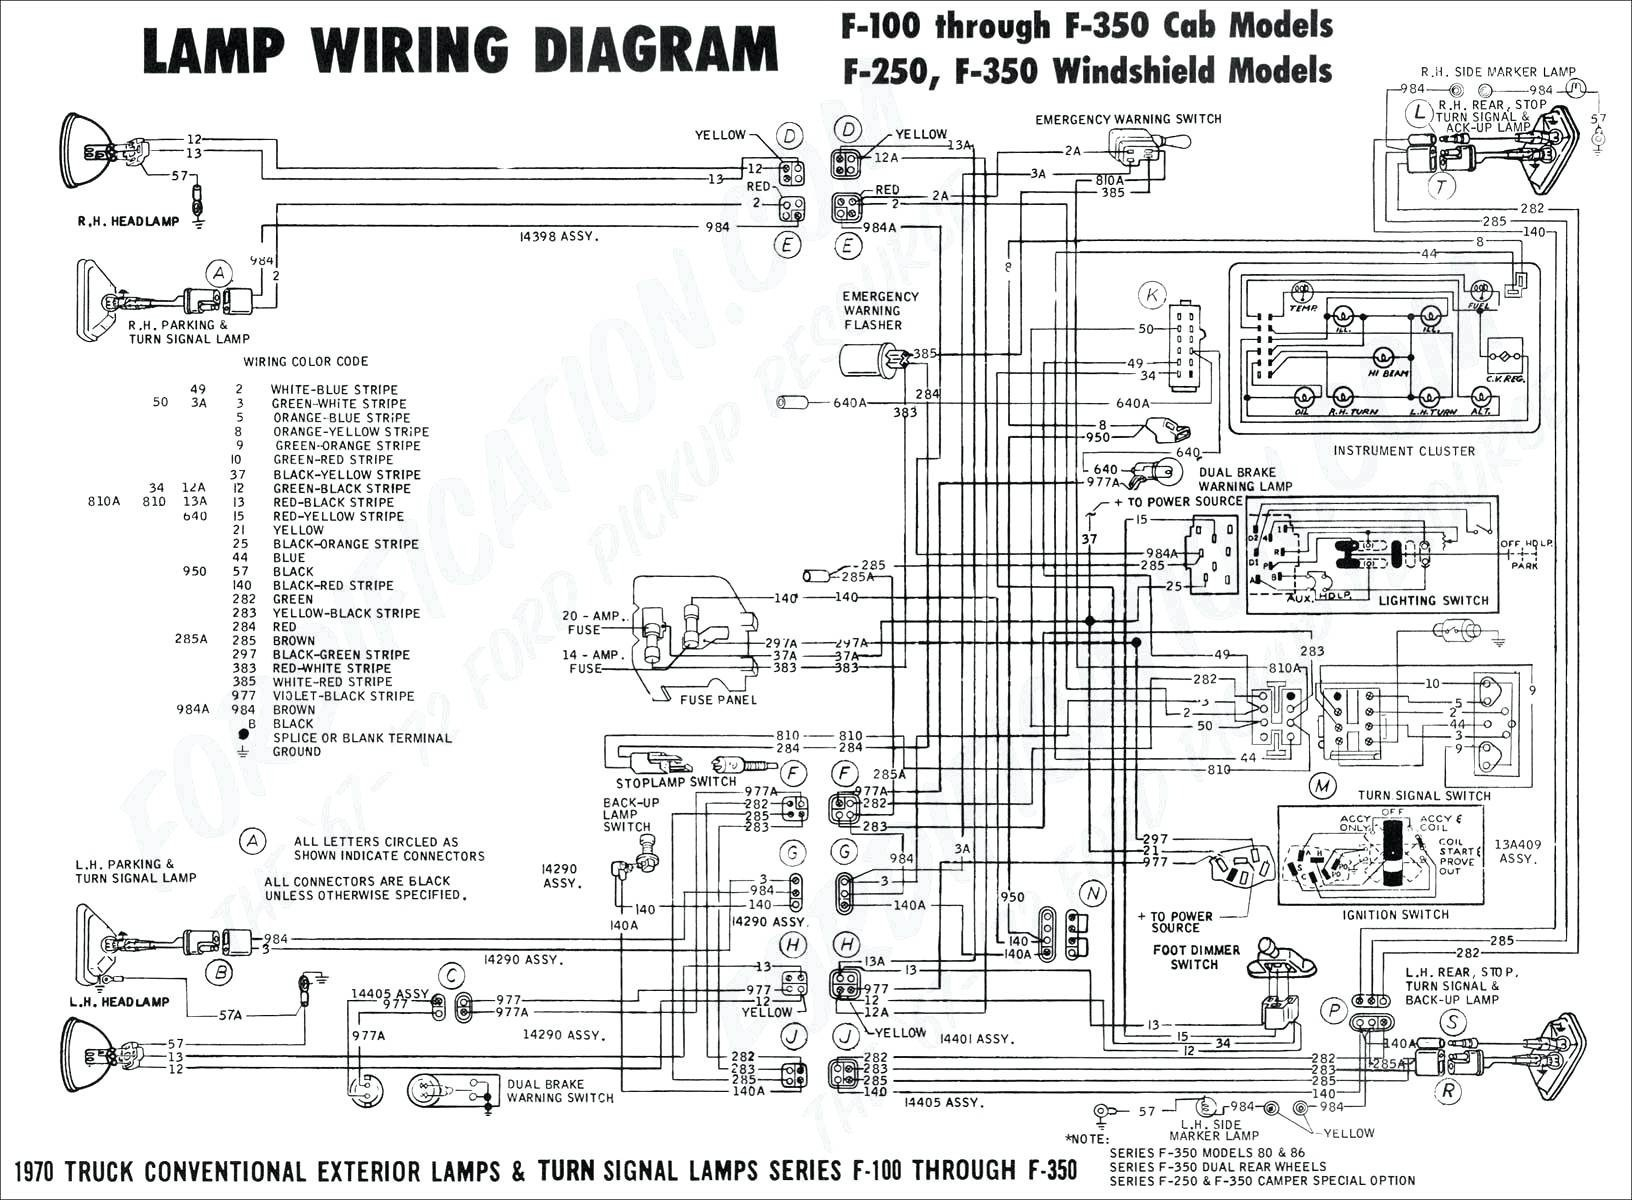 Dodge Ram 1500 Trailer Wiring Diagram Collection on